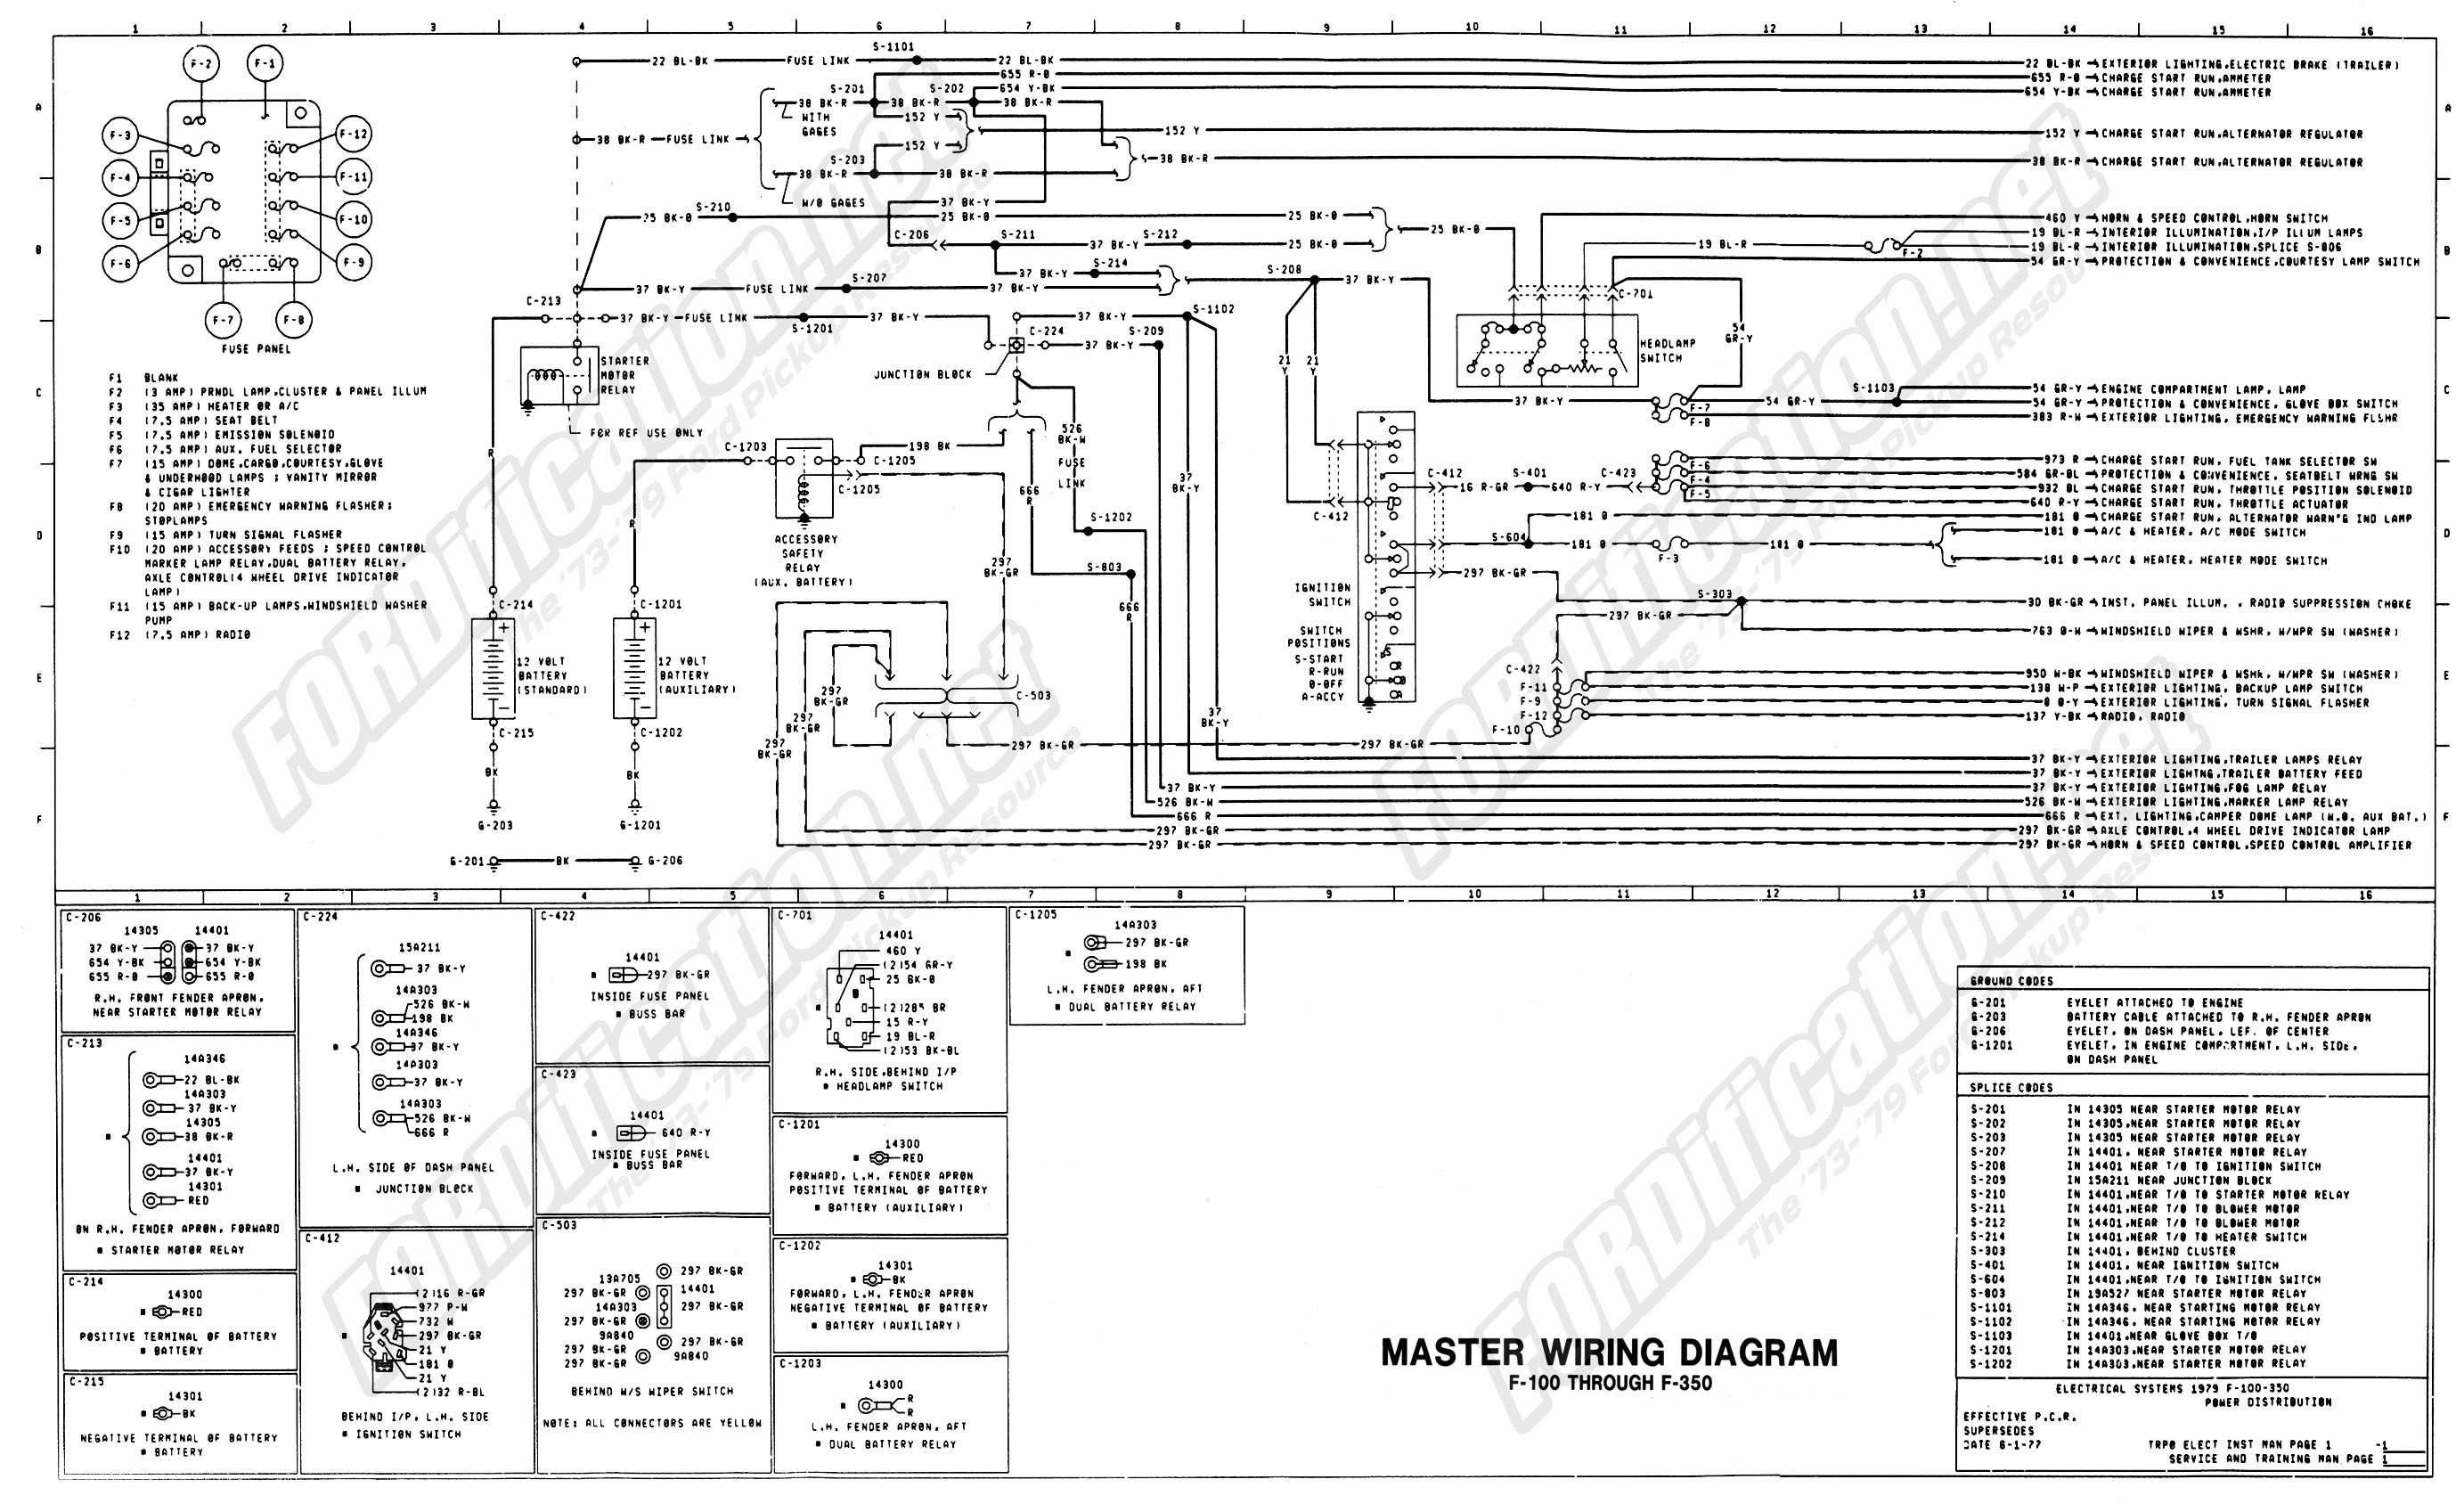 2002 Ford F150 Engine Diagram Econoline Wiring Also Thunderbird 79 Solenoid Truck Enthusiasts Forums Of